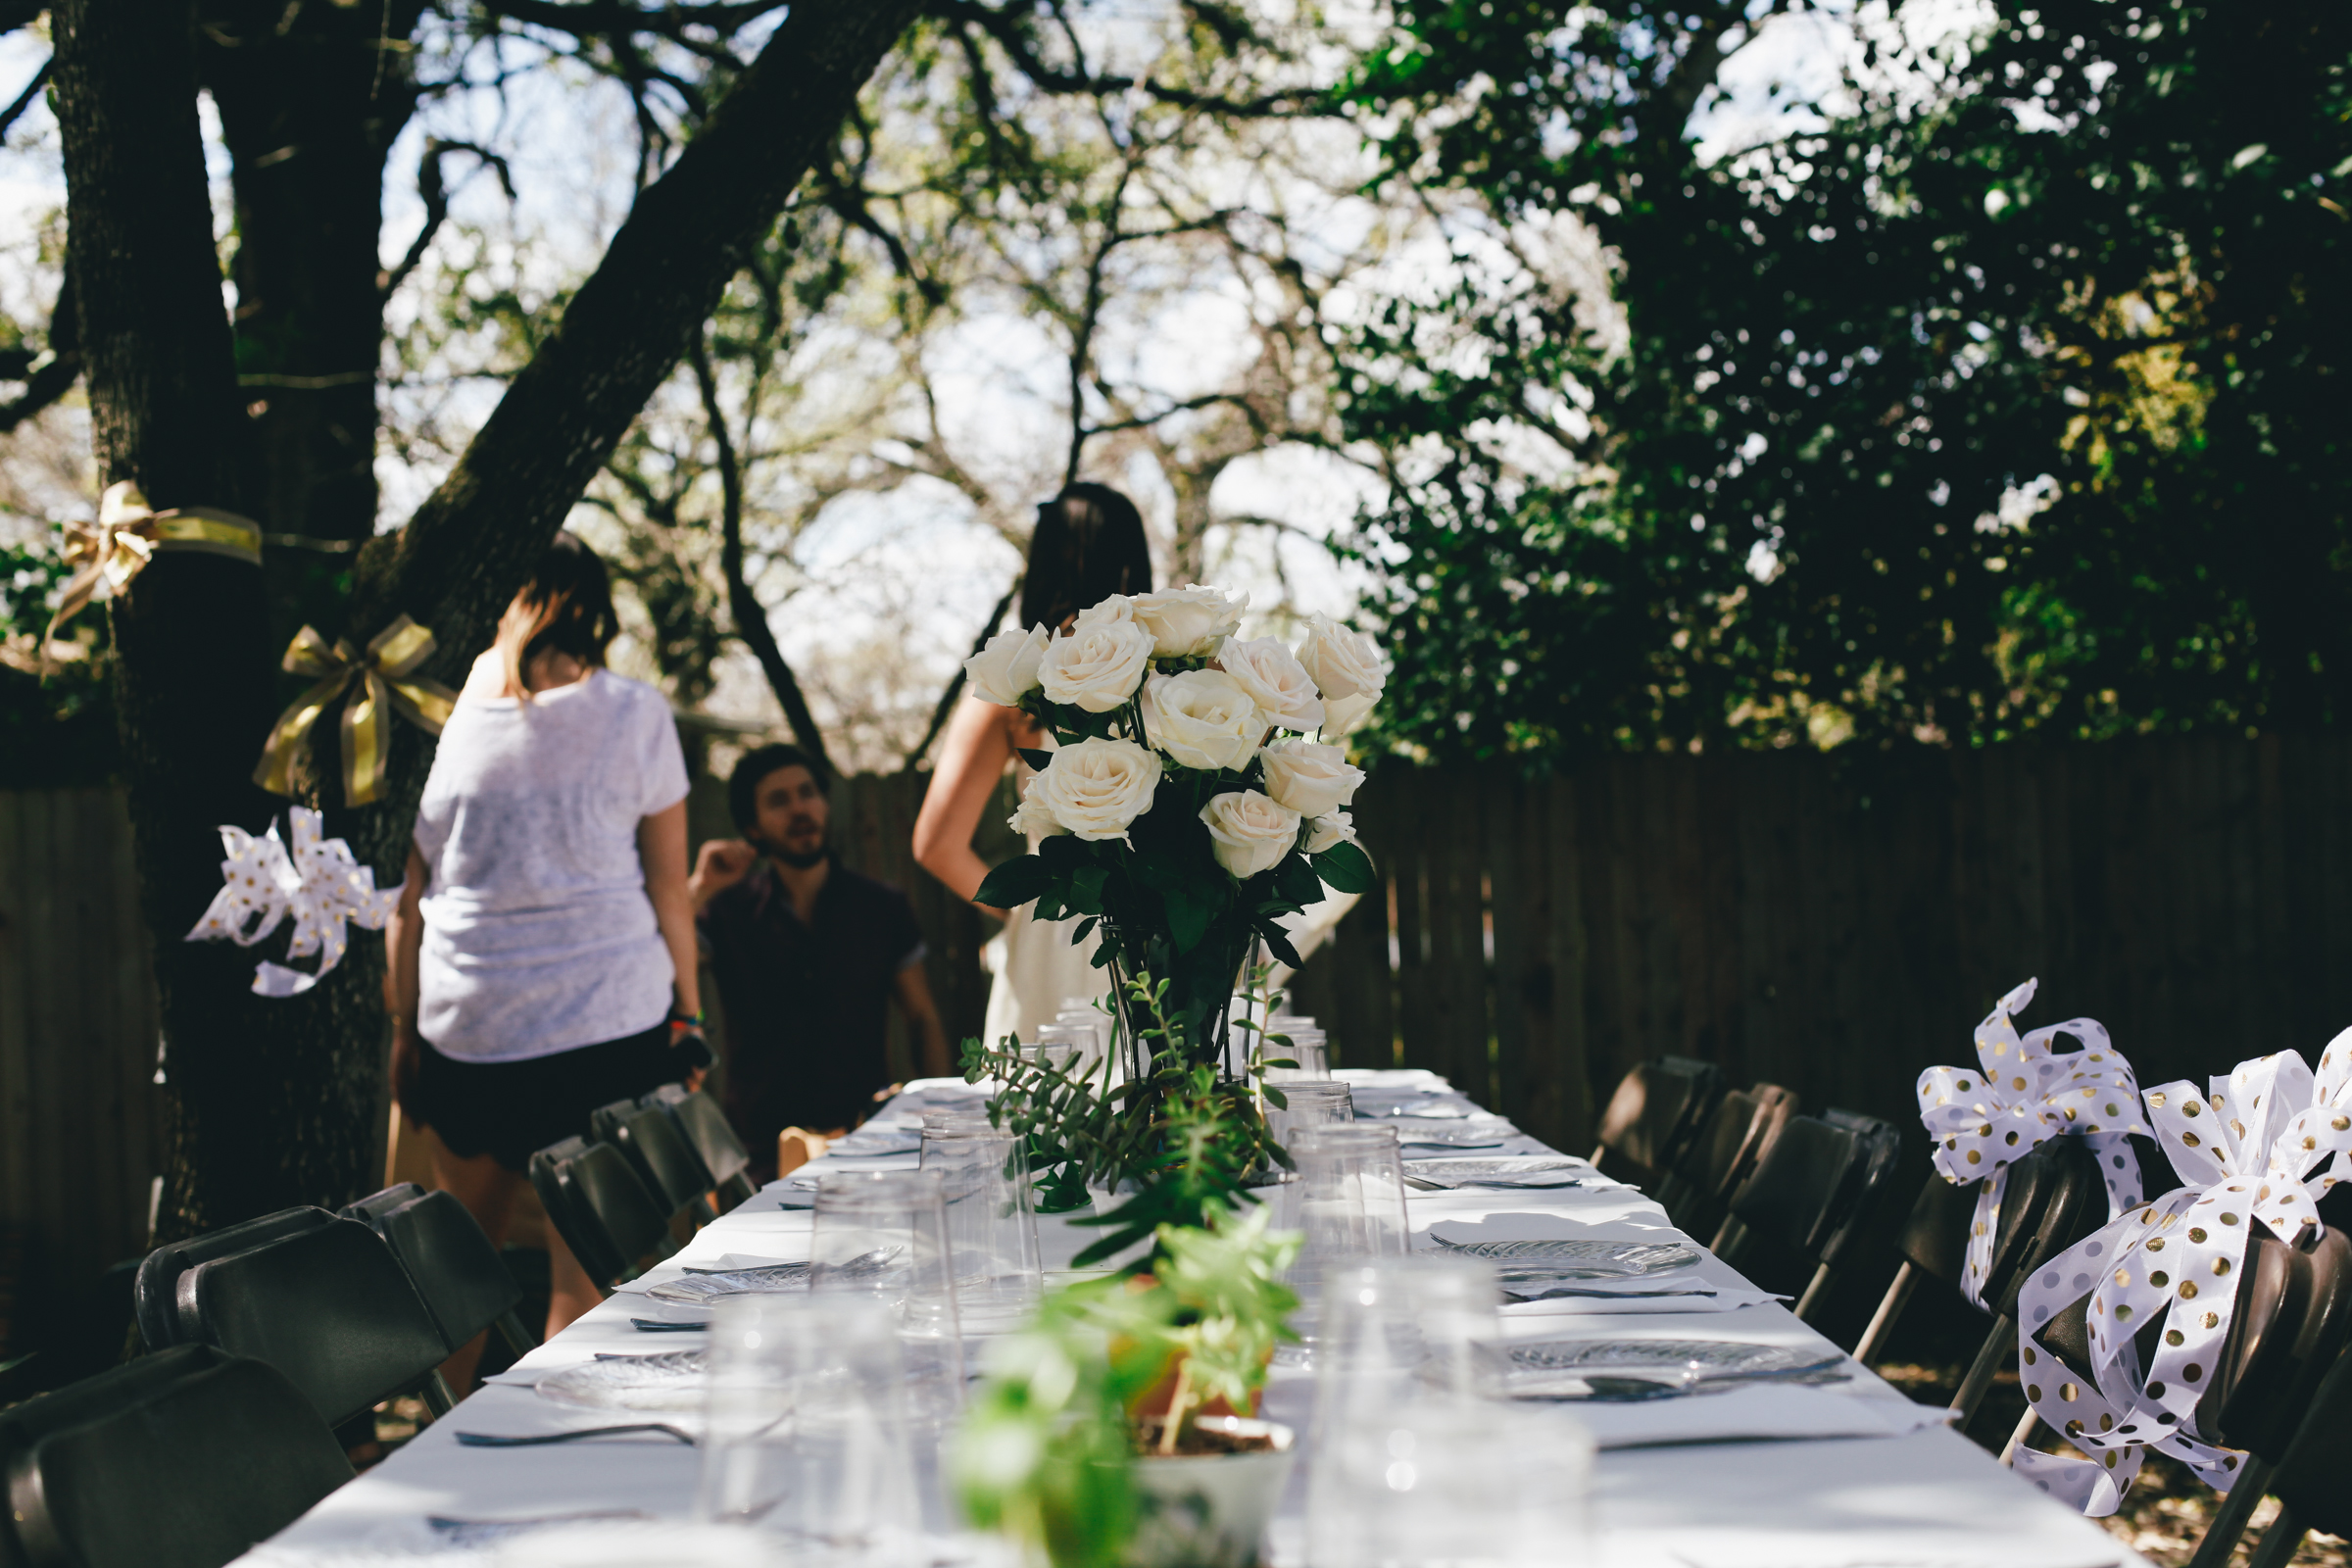 7 Tips to Plan a Rehearsal Dinner for Under $350